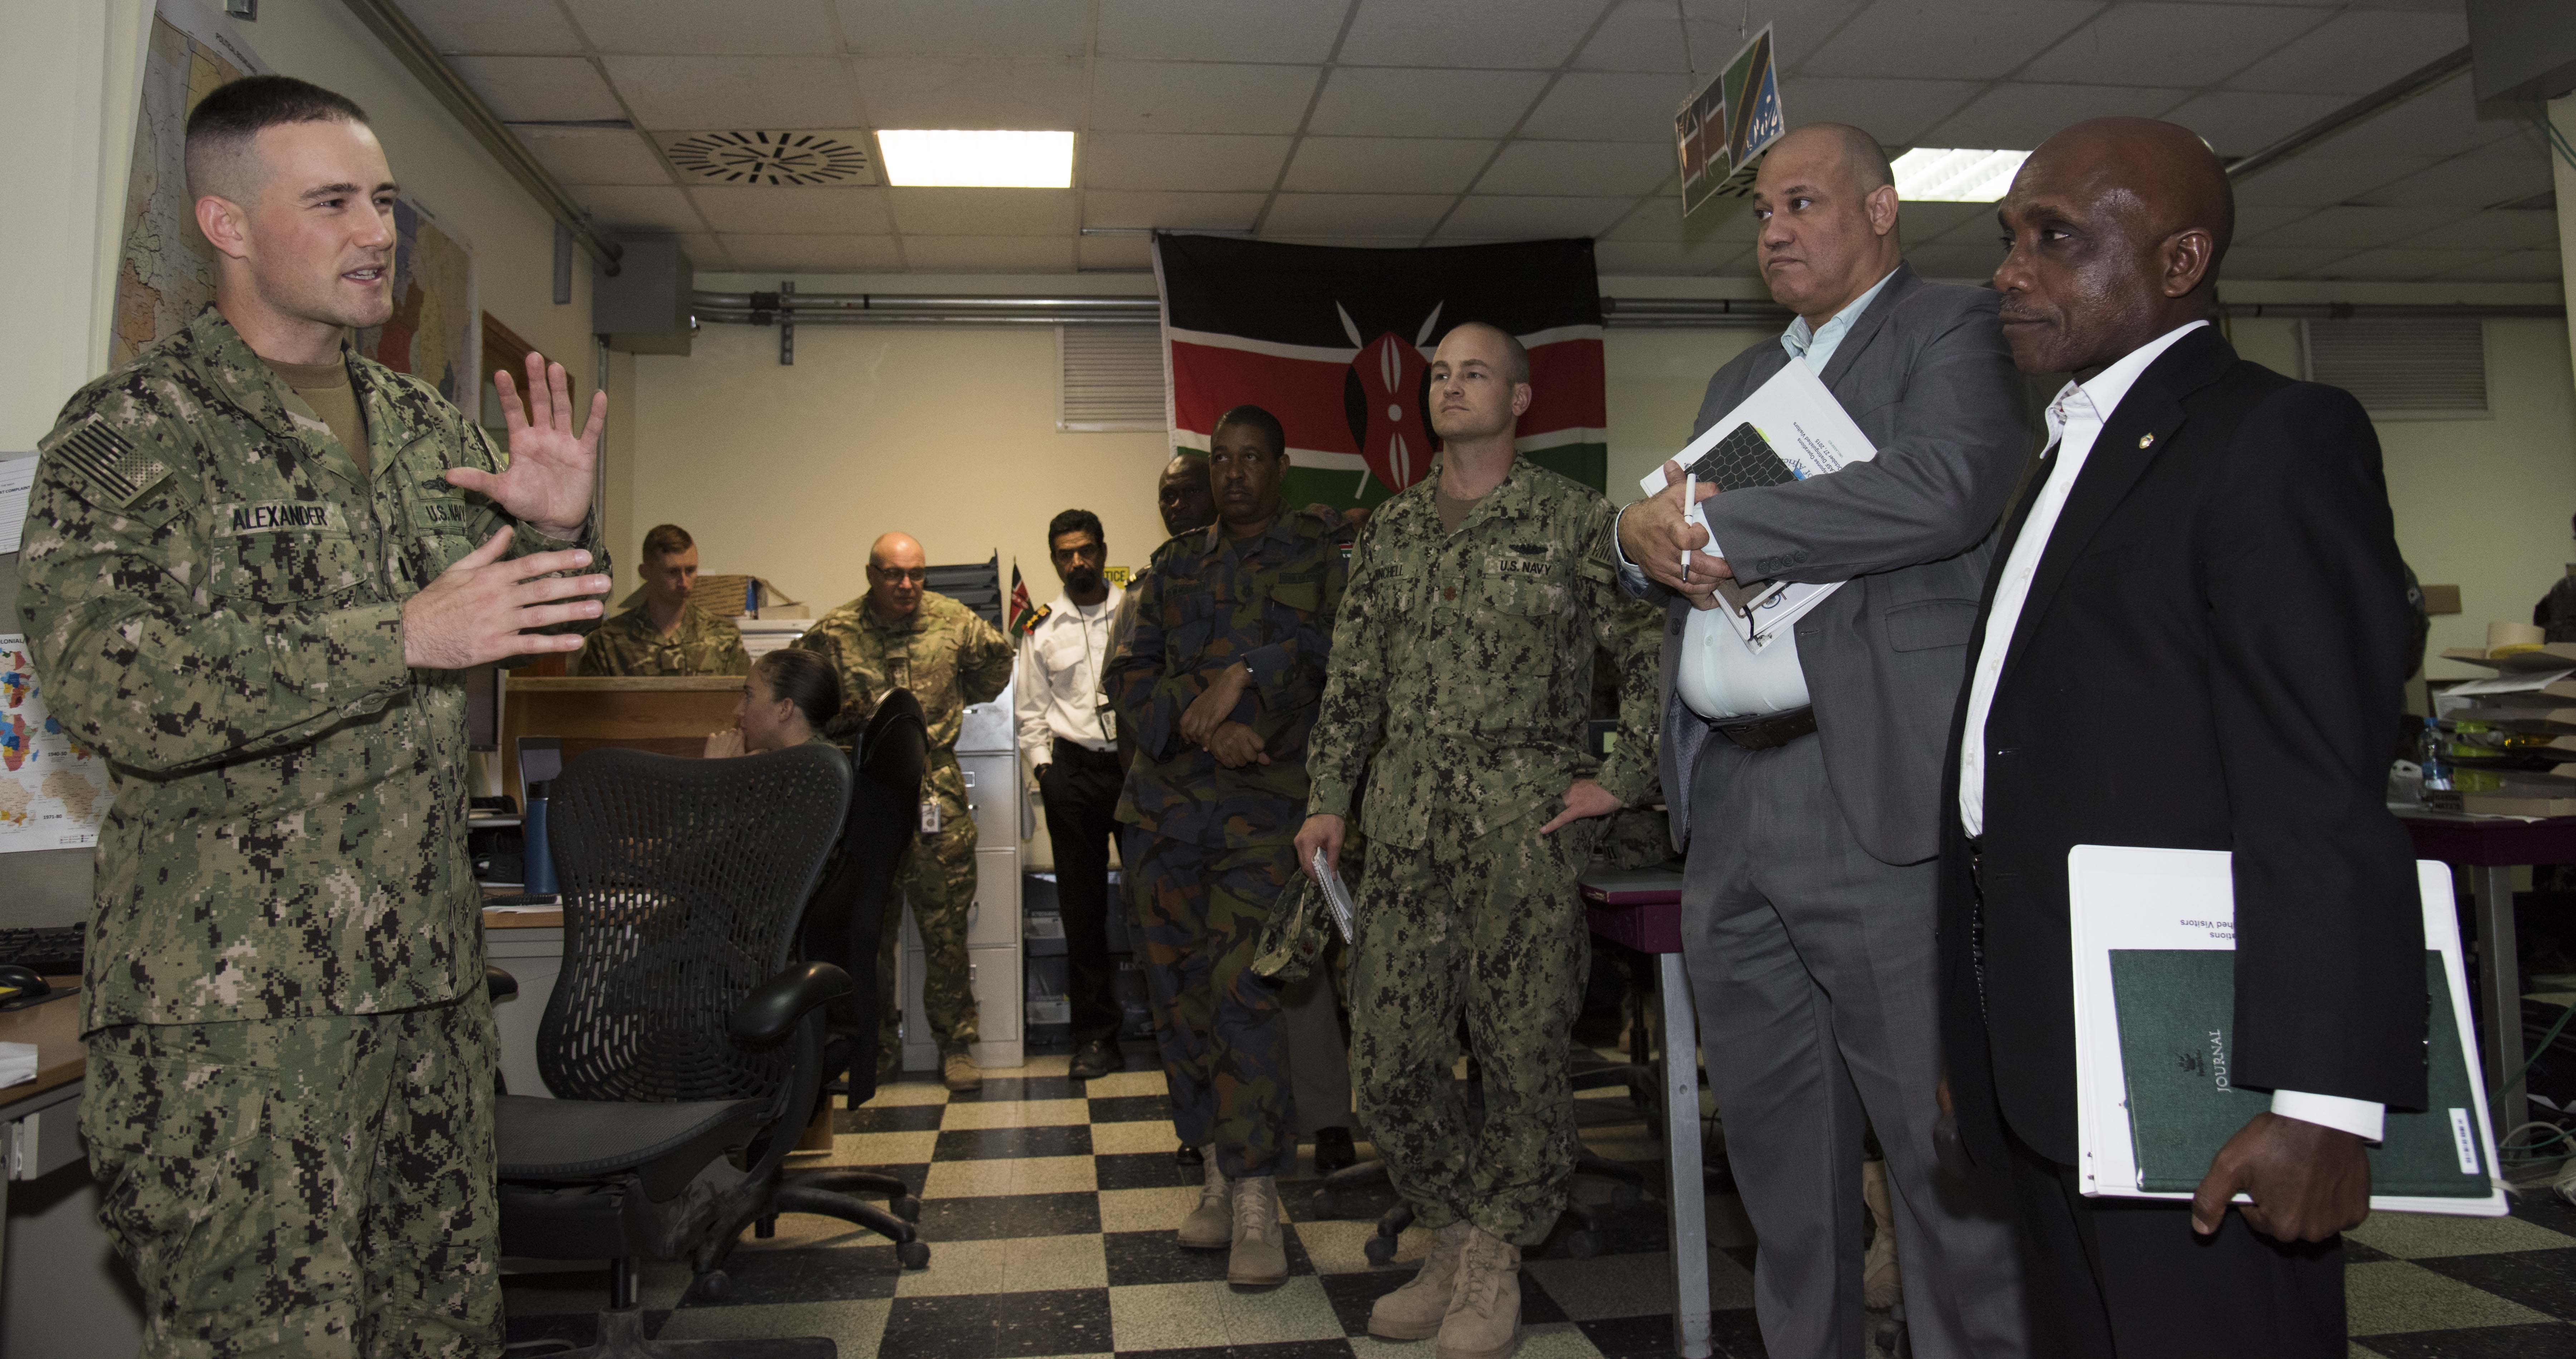 Ambassador Issimail Chanfi, Eastern Africa Standby Force (EASF) director, receives an introduction to the Fusion Action Cell Oct. 27, 2015 at Camp Lemonnier, Djibouti. The FAC is comprised of service members from the U.S., Europe and East Africa working together to setup military-to-military projects and civilian support initiatives in partner countries throughout the Horn of Africa. (U.S. Air Force photo by Staff Sgt. Victoria Sneed)